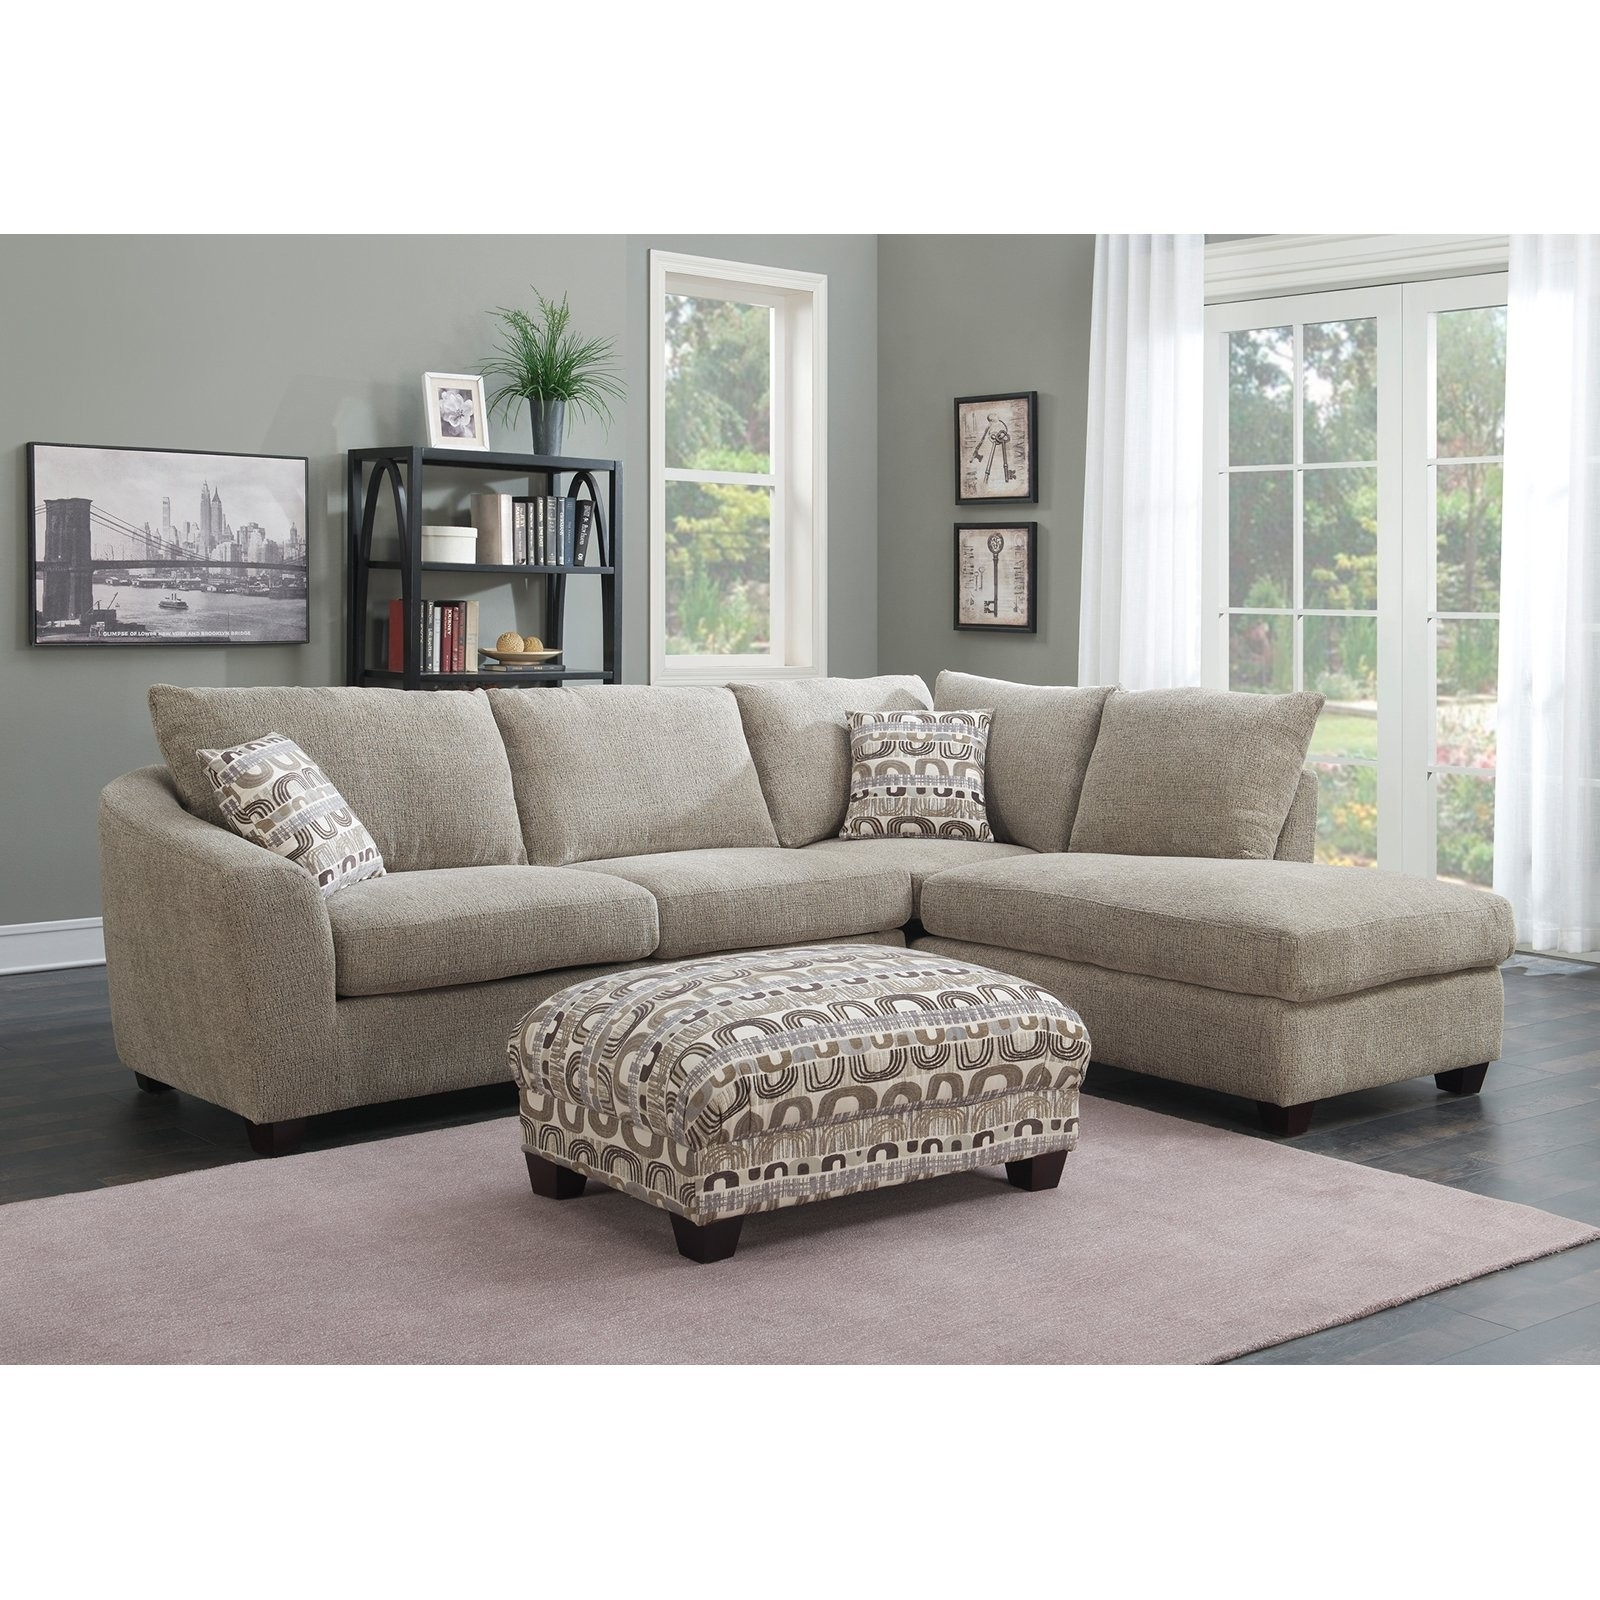 2 Piece Sectional With Chaise Avery W Laf Armless Living Spaces For Avery 2 Piece Sectionals With Raf Armless Chaise (View 6 of 25)